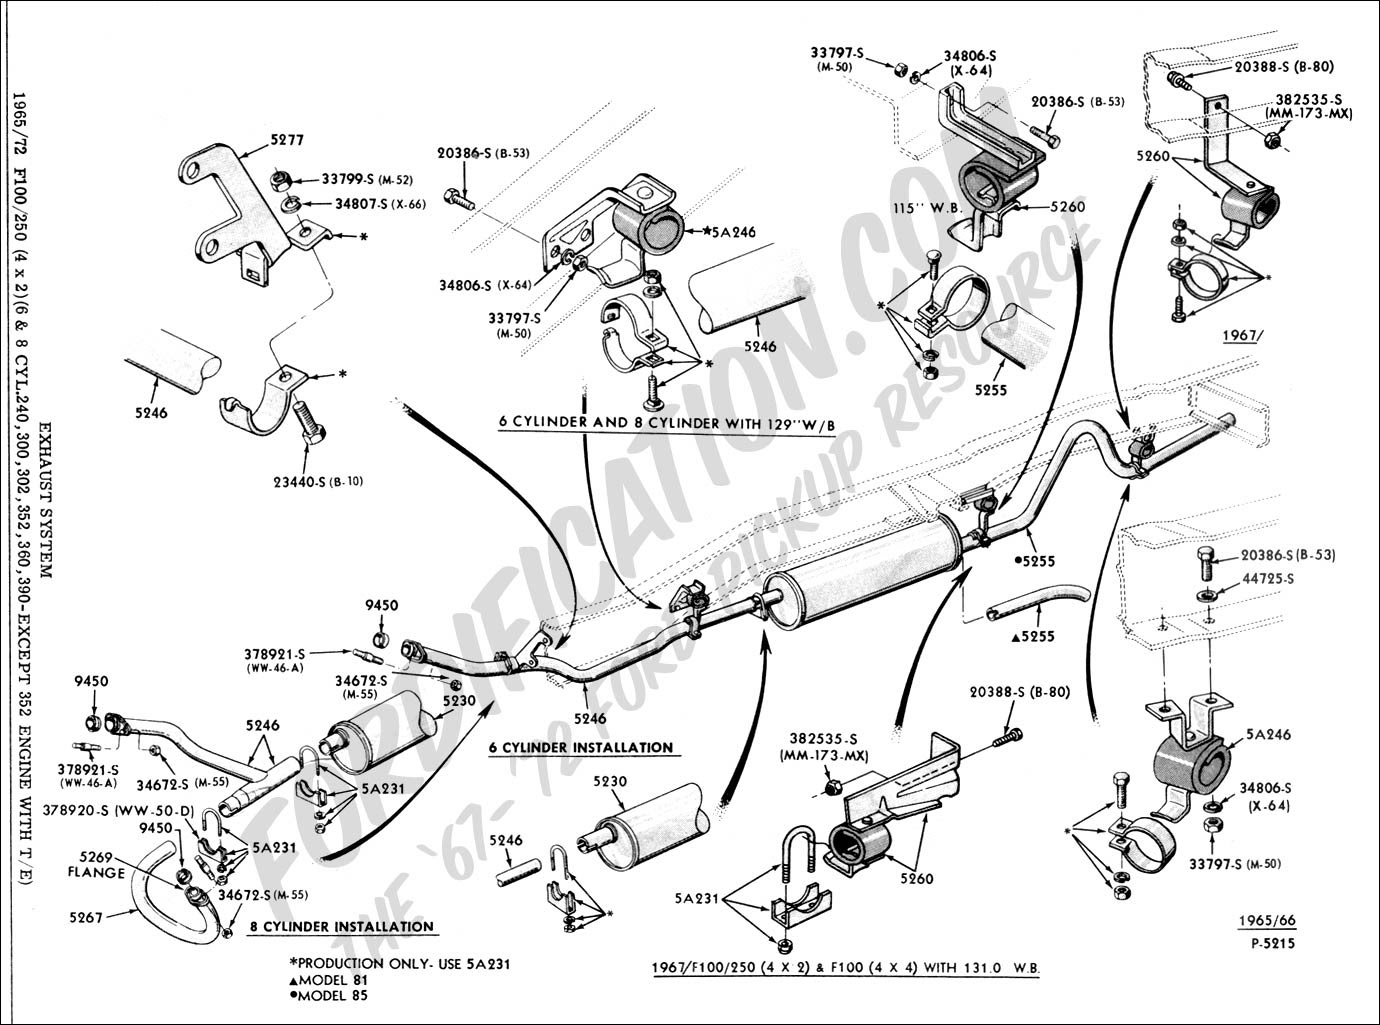 1989 Ford F 150 Exhaust Diagrams Wiring Diagrams Regular A Regular A Miglioribanche It